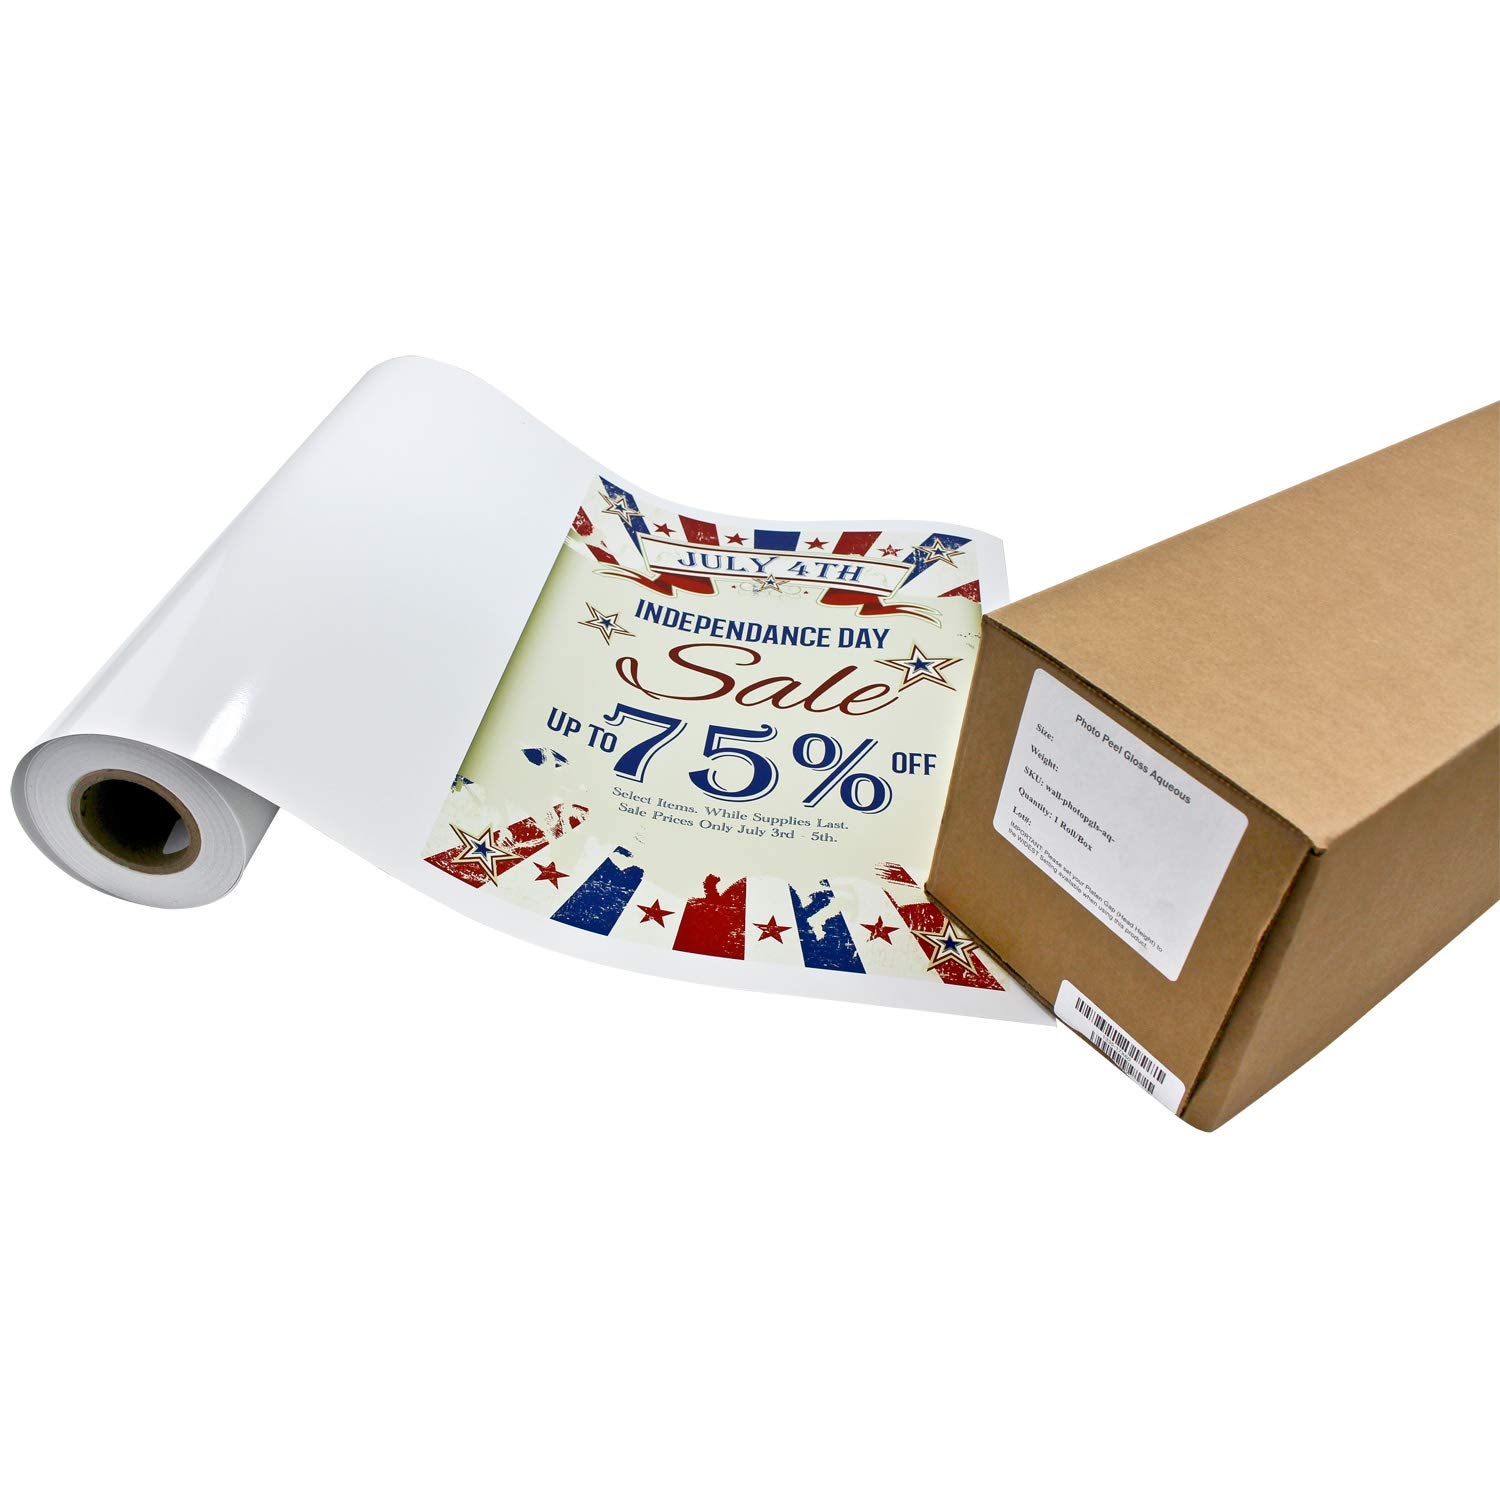 Photo Peel Glossy Printable Adhesive Vinyl Roll 24 inches x 60 feet Inkjet Peel and Stick Sticker Paper Works with All Inkjet Printers Including Professional Makes and Models